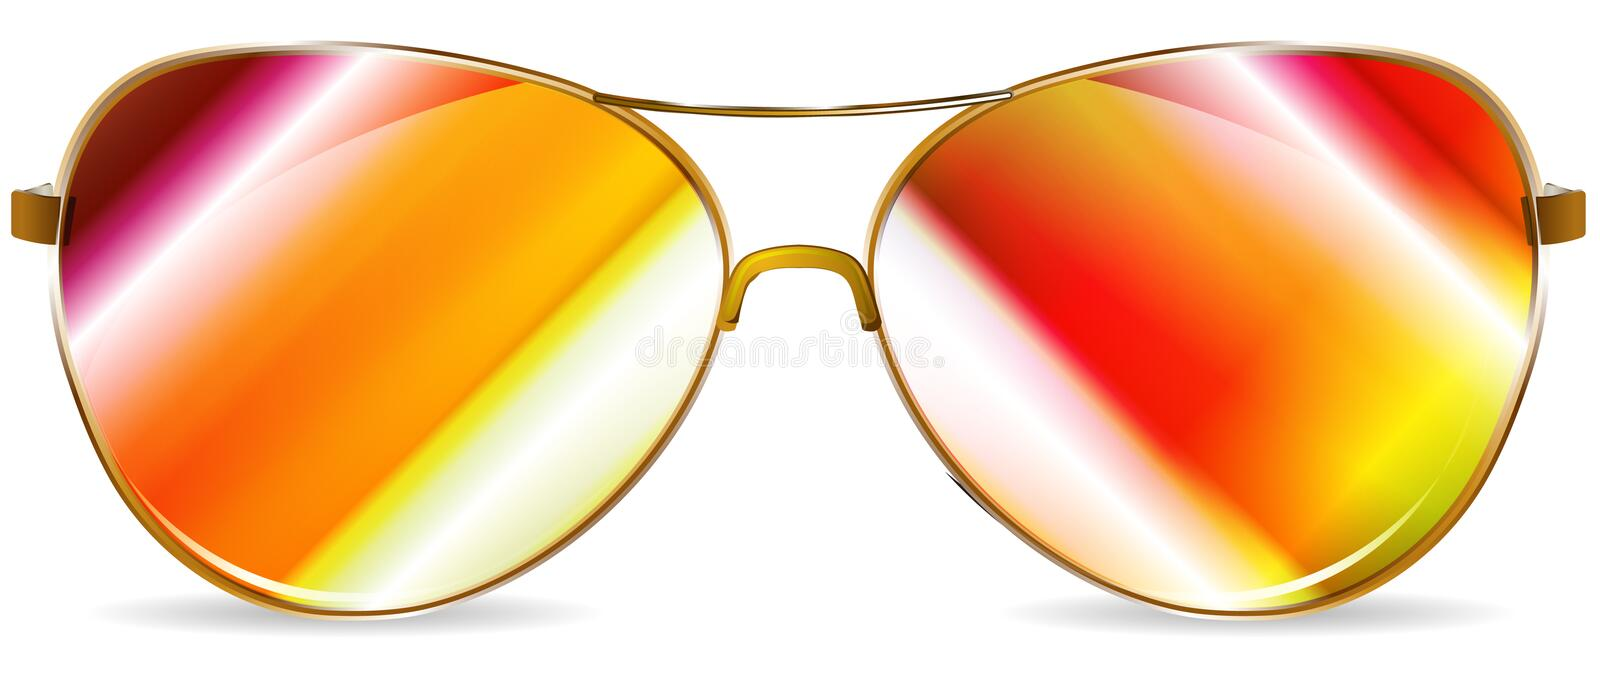 Download Sunglasses stock vector. Image of gradient, fashioned - 20775902